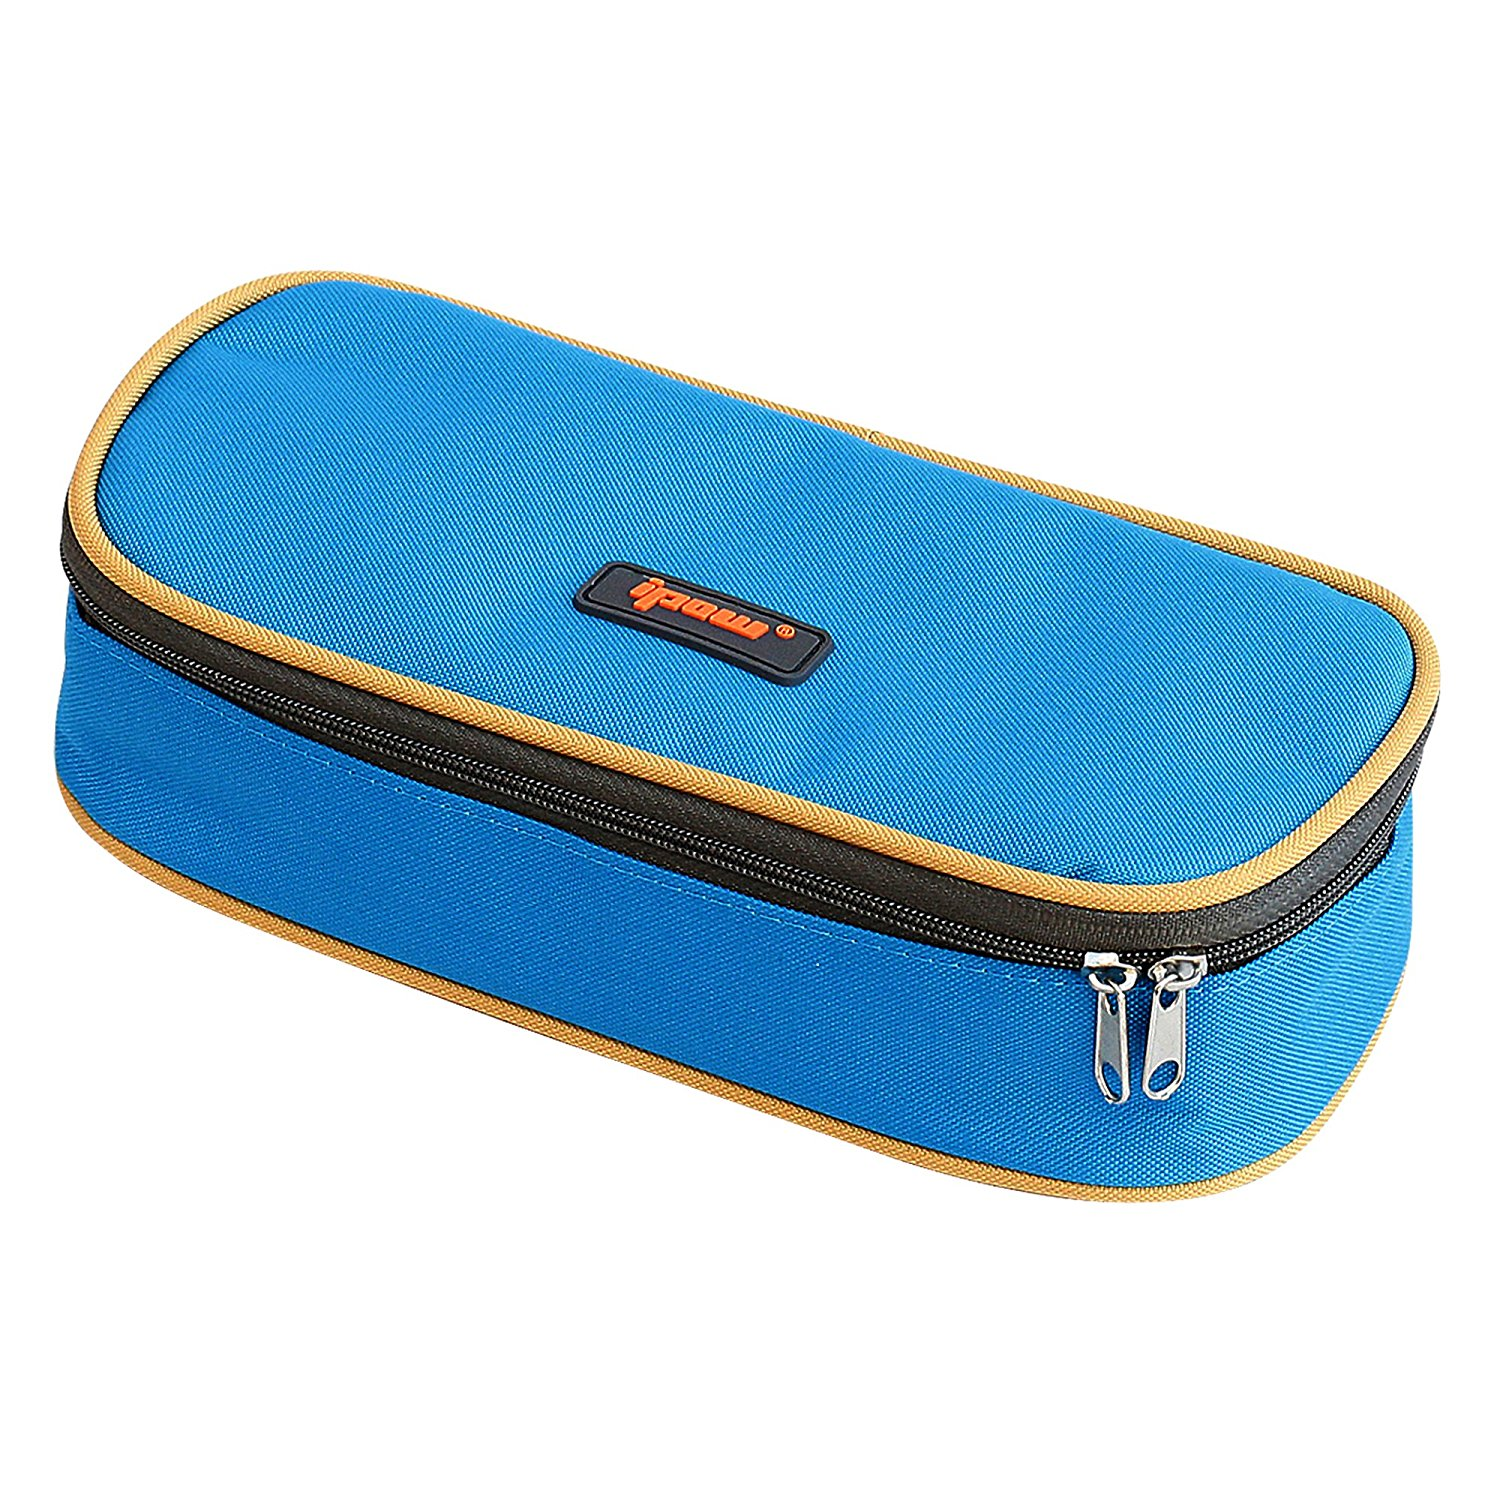 Pencil Case, IPOW Big Capacity Pencil Bag Pouch with Durable Zipper Students Stationery Pen Bag for Pens, Pencils, Markers, Eraser, Highlighters and Other School Supplies, Blue